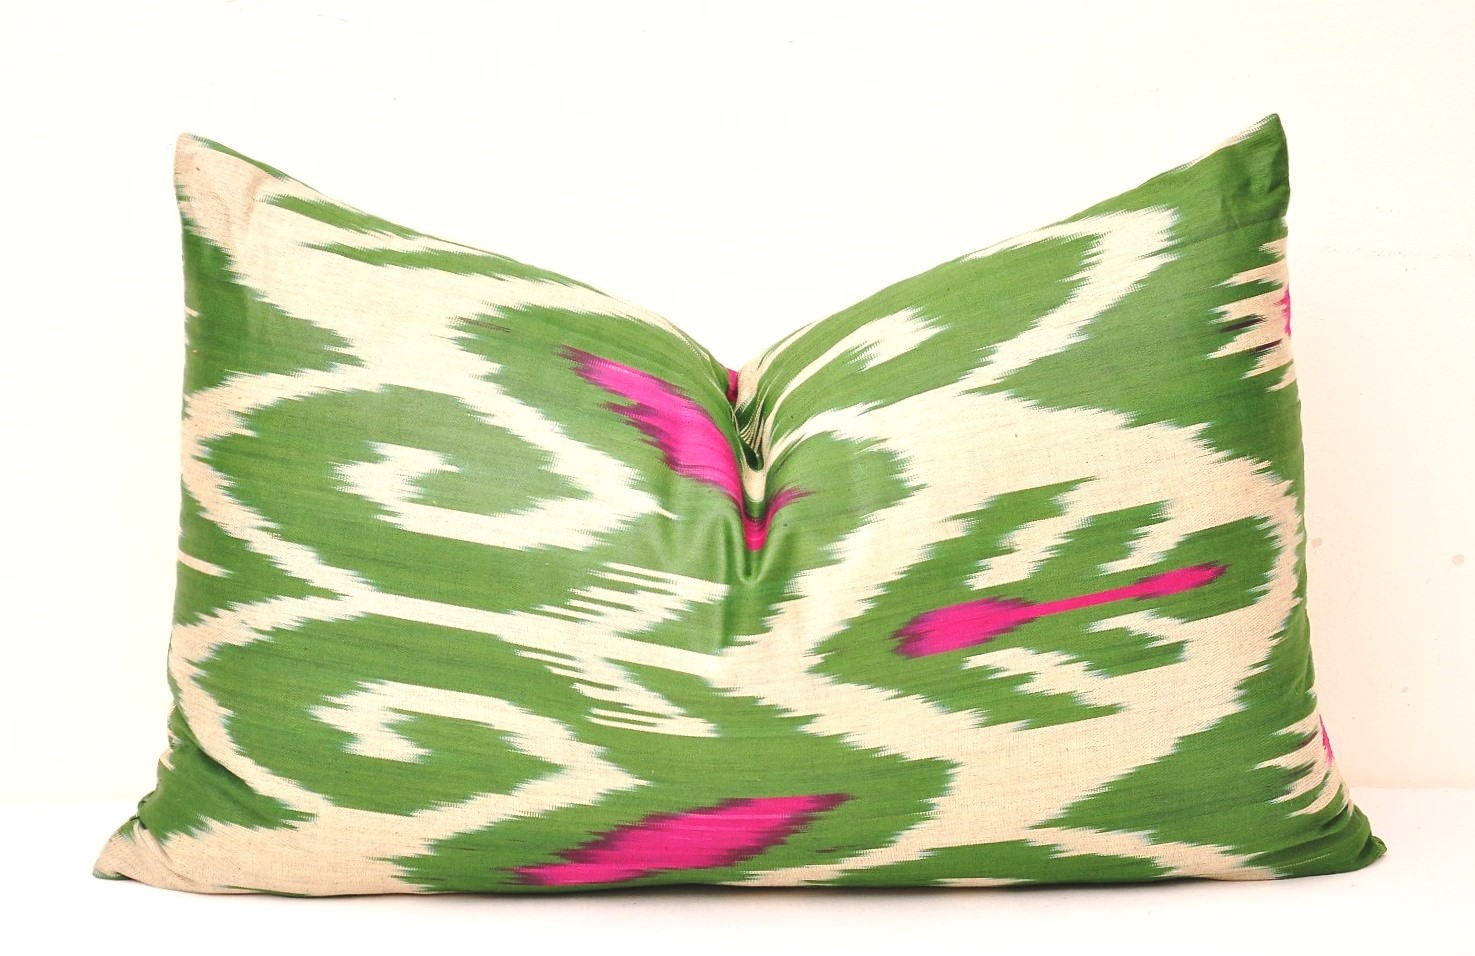 Decorative Lumbar Pillows Green : Green decorative throw pillows - Alesouk Grand Bazaar online shopping